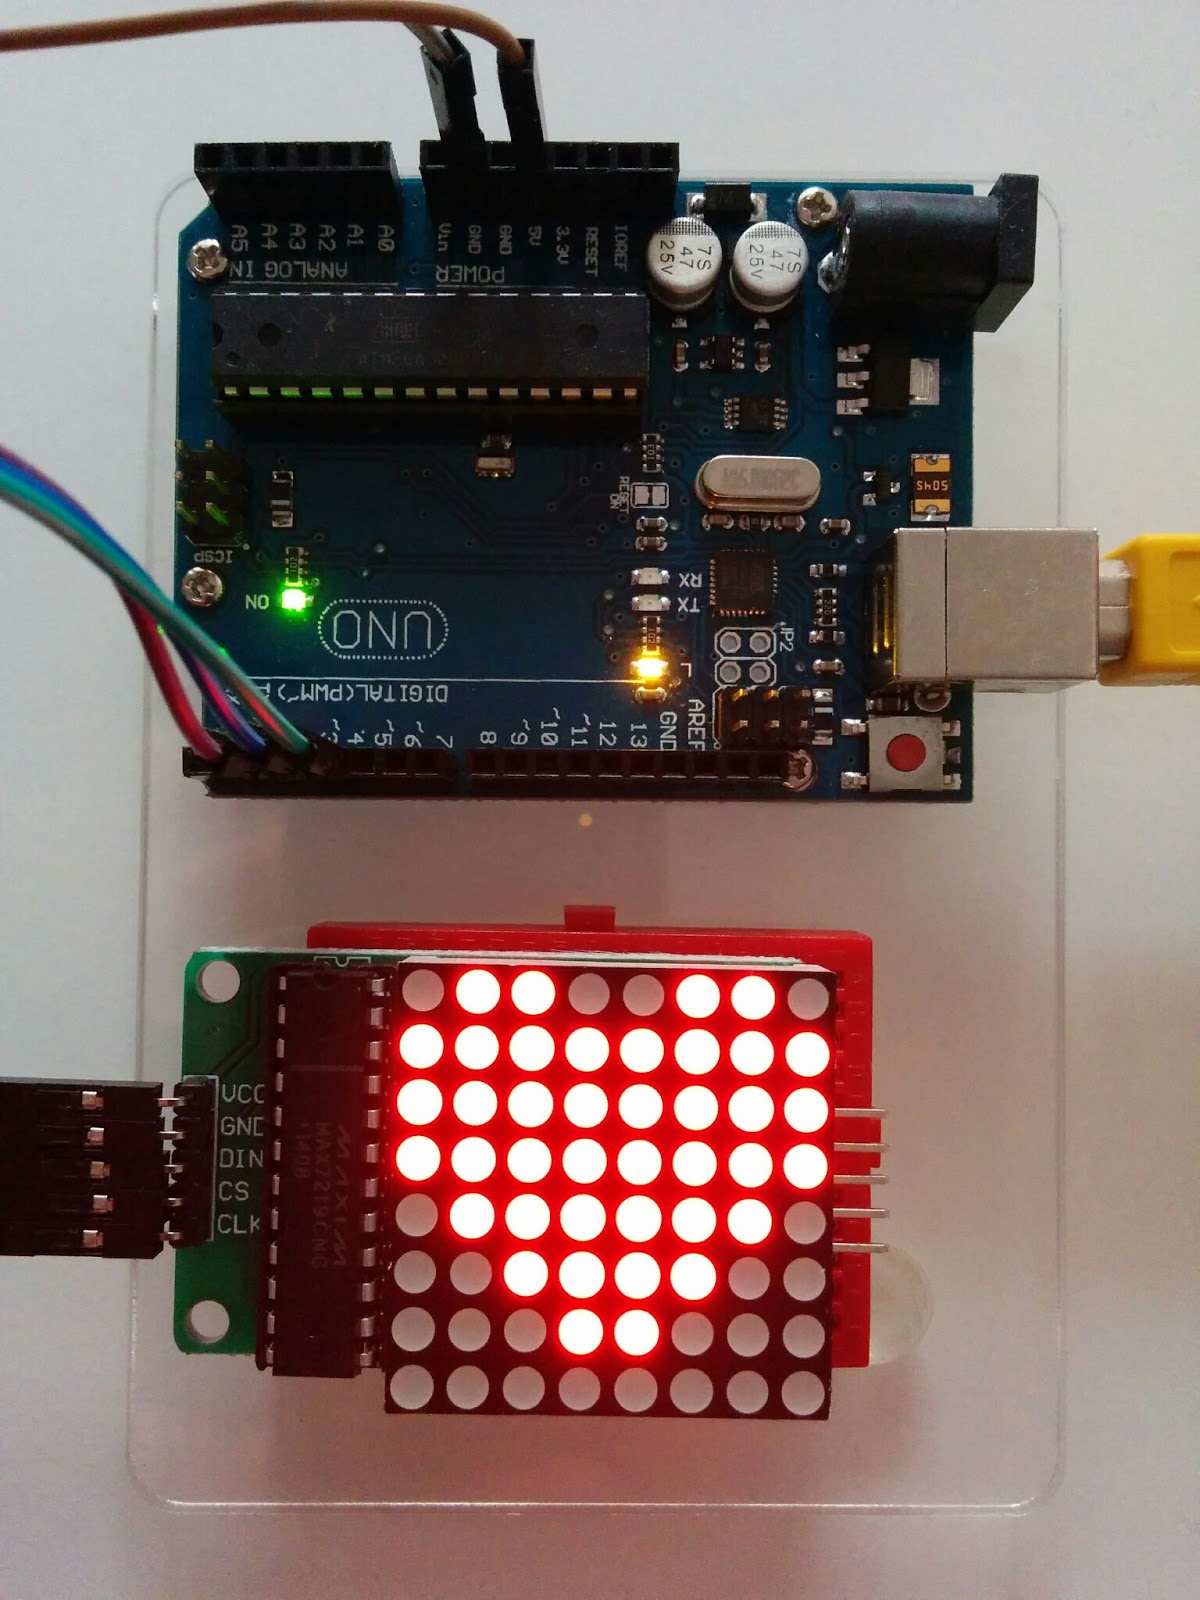 Beating Heart With Arduino And A Max7219 8x8 Led Matrix Yet Advanced Blink Circuit This Is Very Simple Project To Display Using Board Driven By Chip